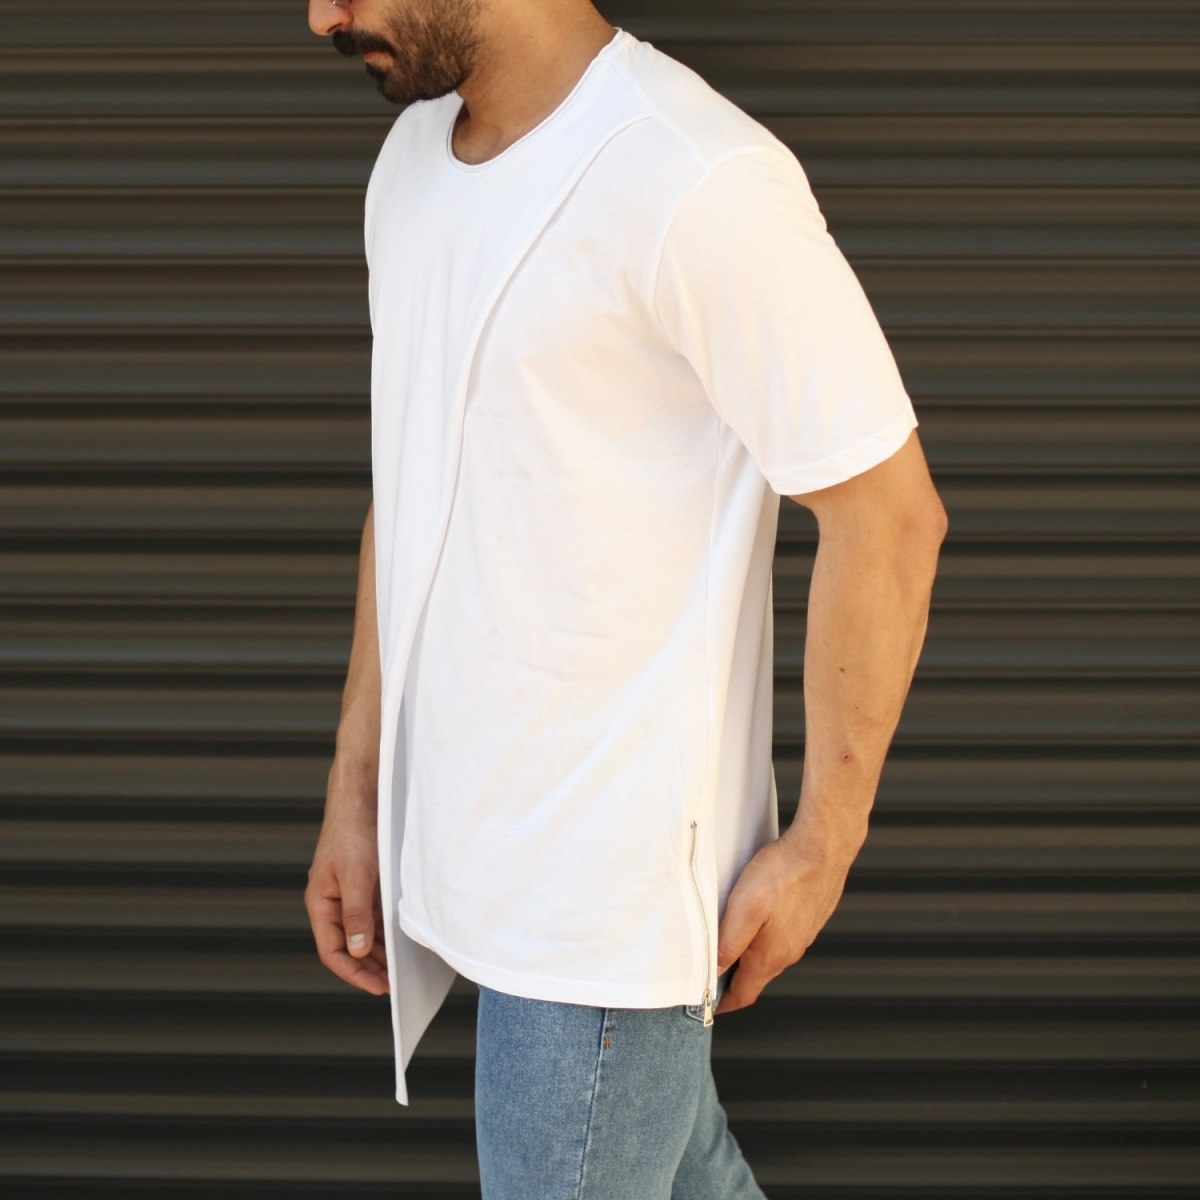 Men's Cross-Pieced Round Neck T-Shirt In White Mv Premium Brand - 3